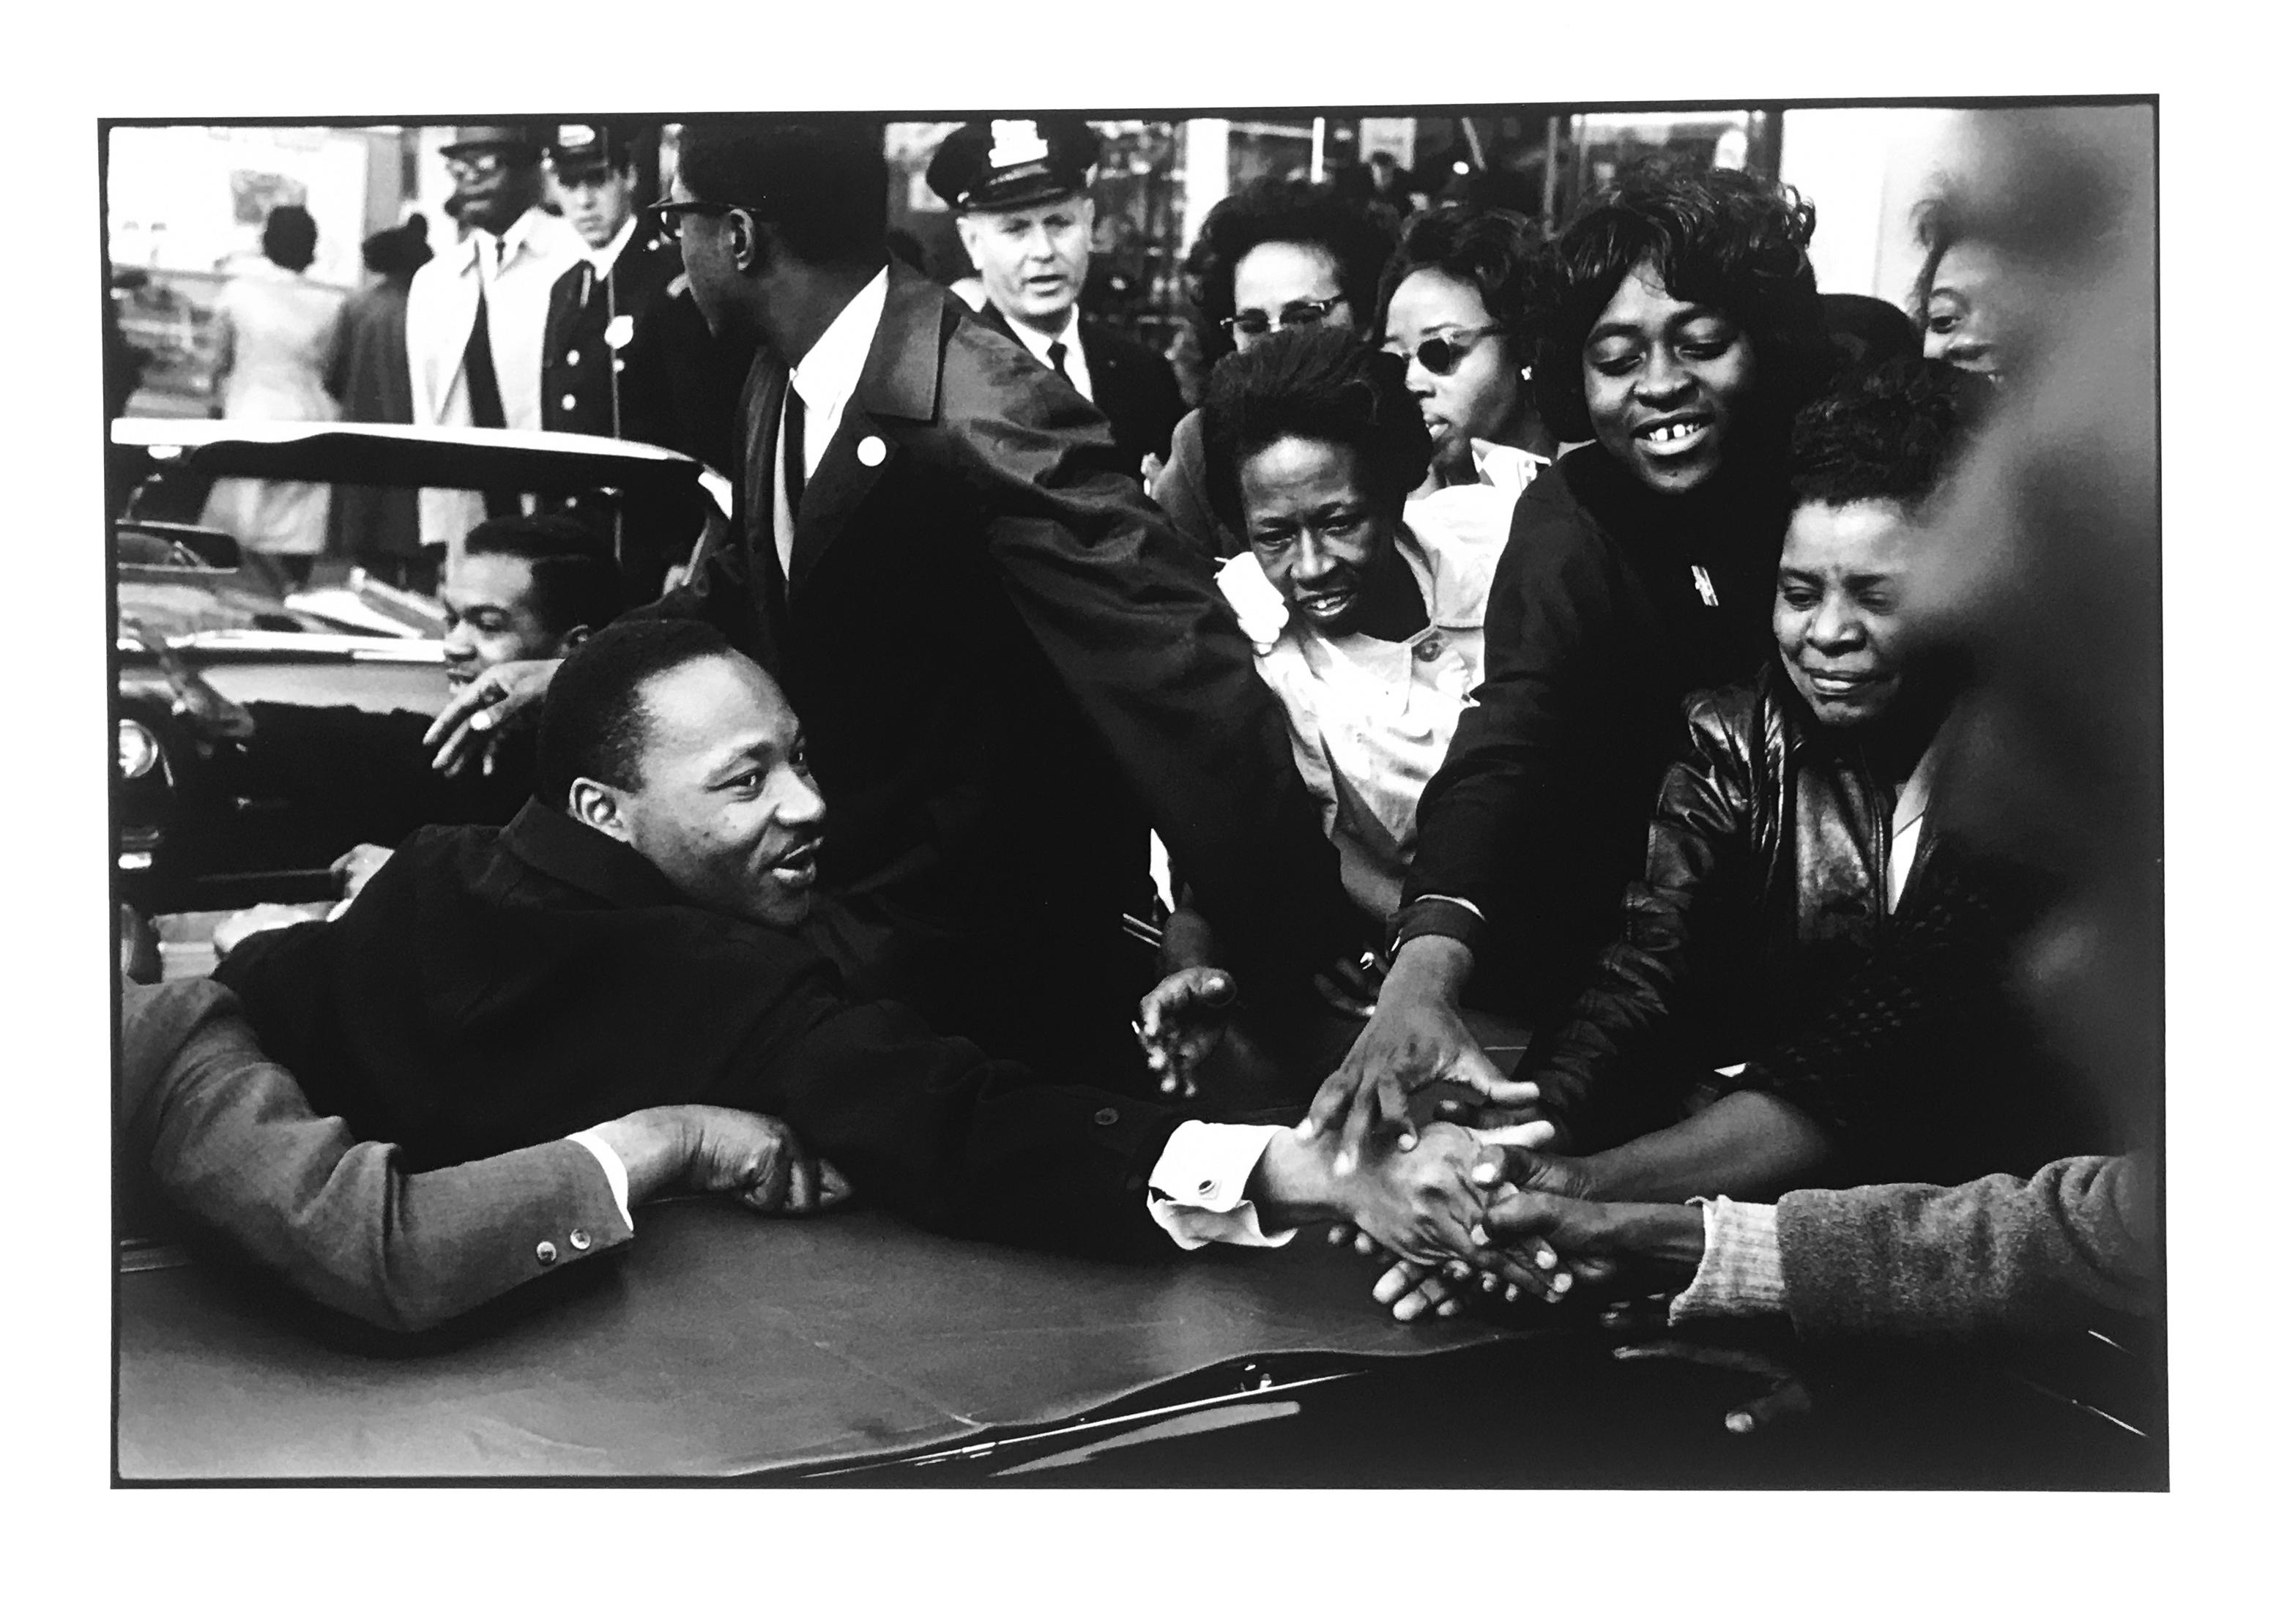 Martin Luther King, MLK, Black and White Limited Photograph of MLK 1960s